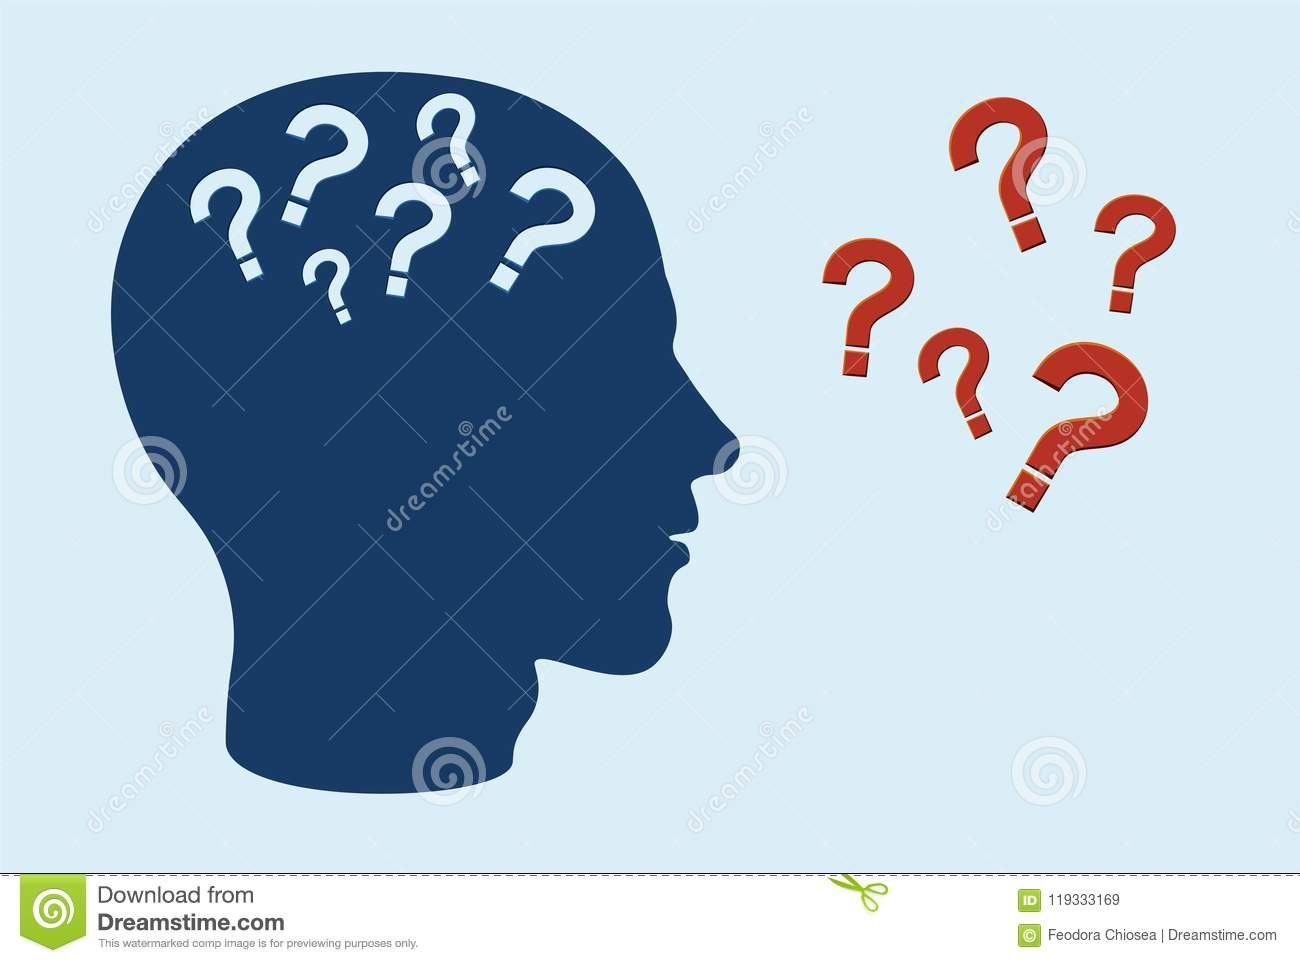 Cognitive function impairment concept. Side profile of human head with question marks